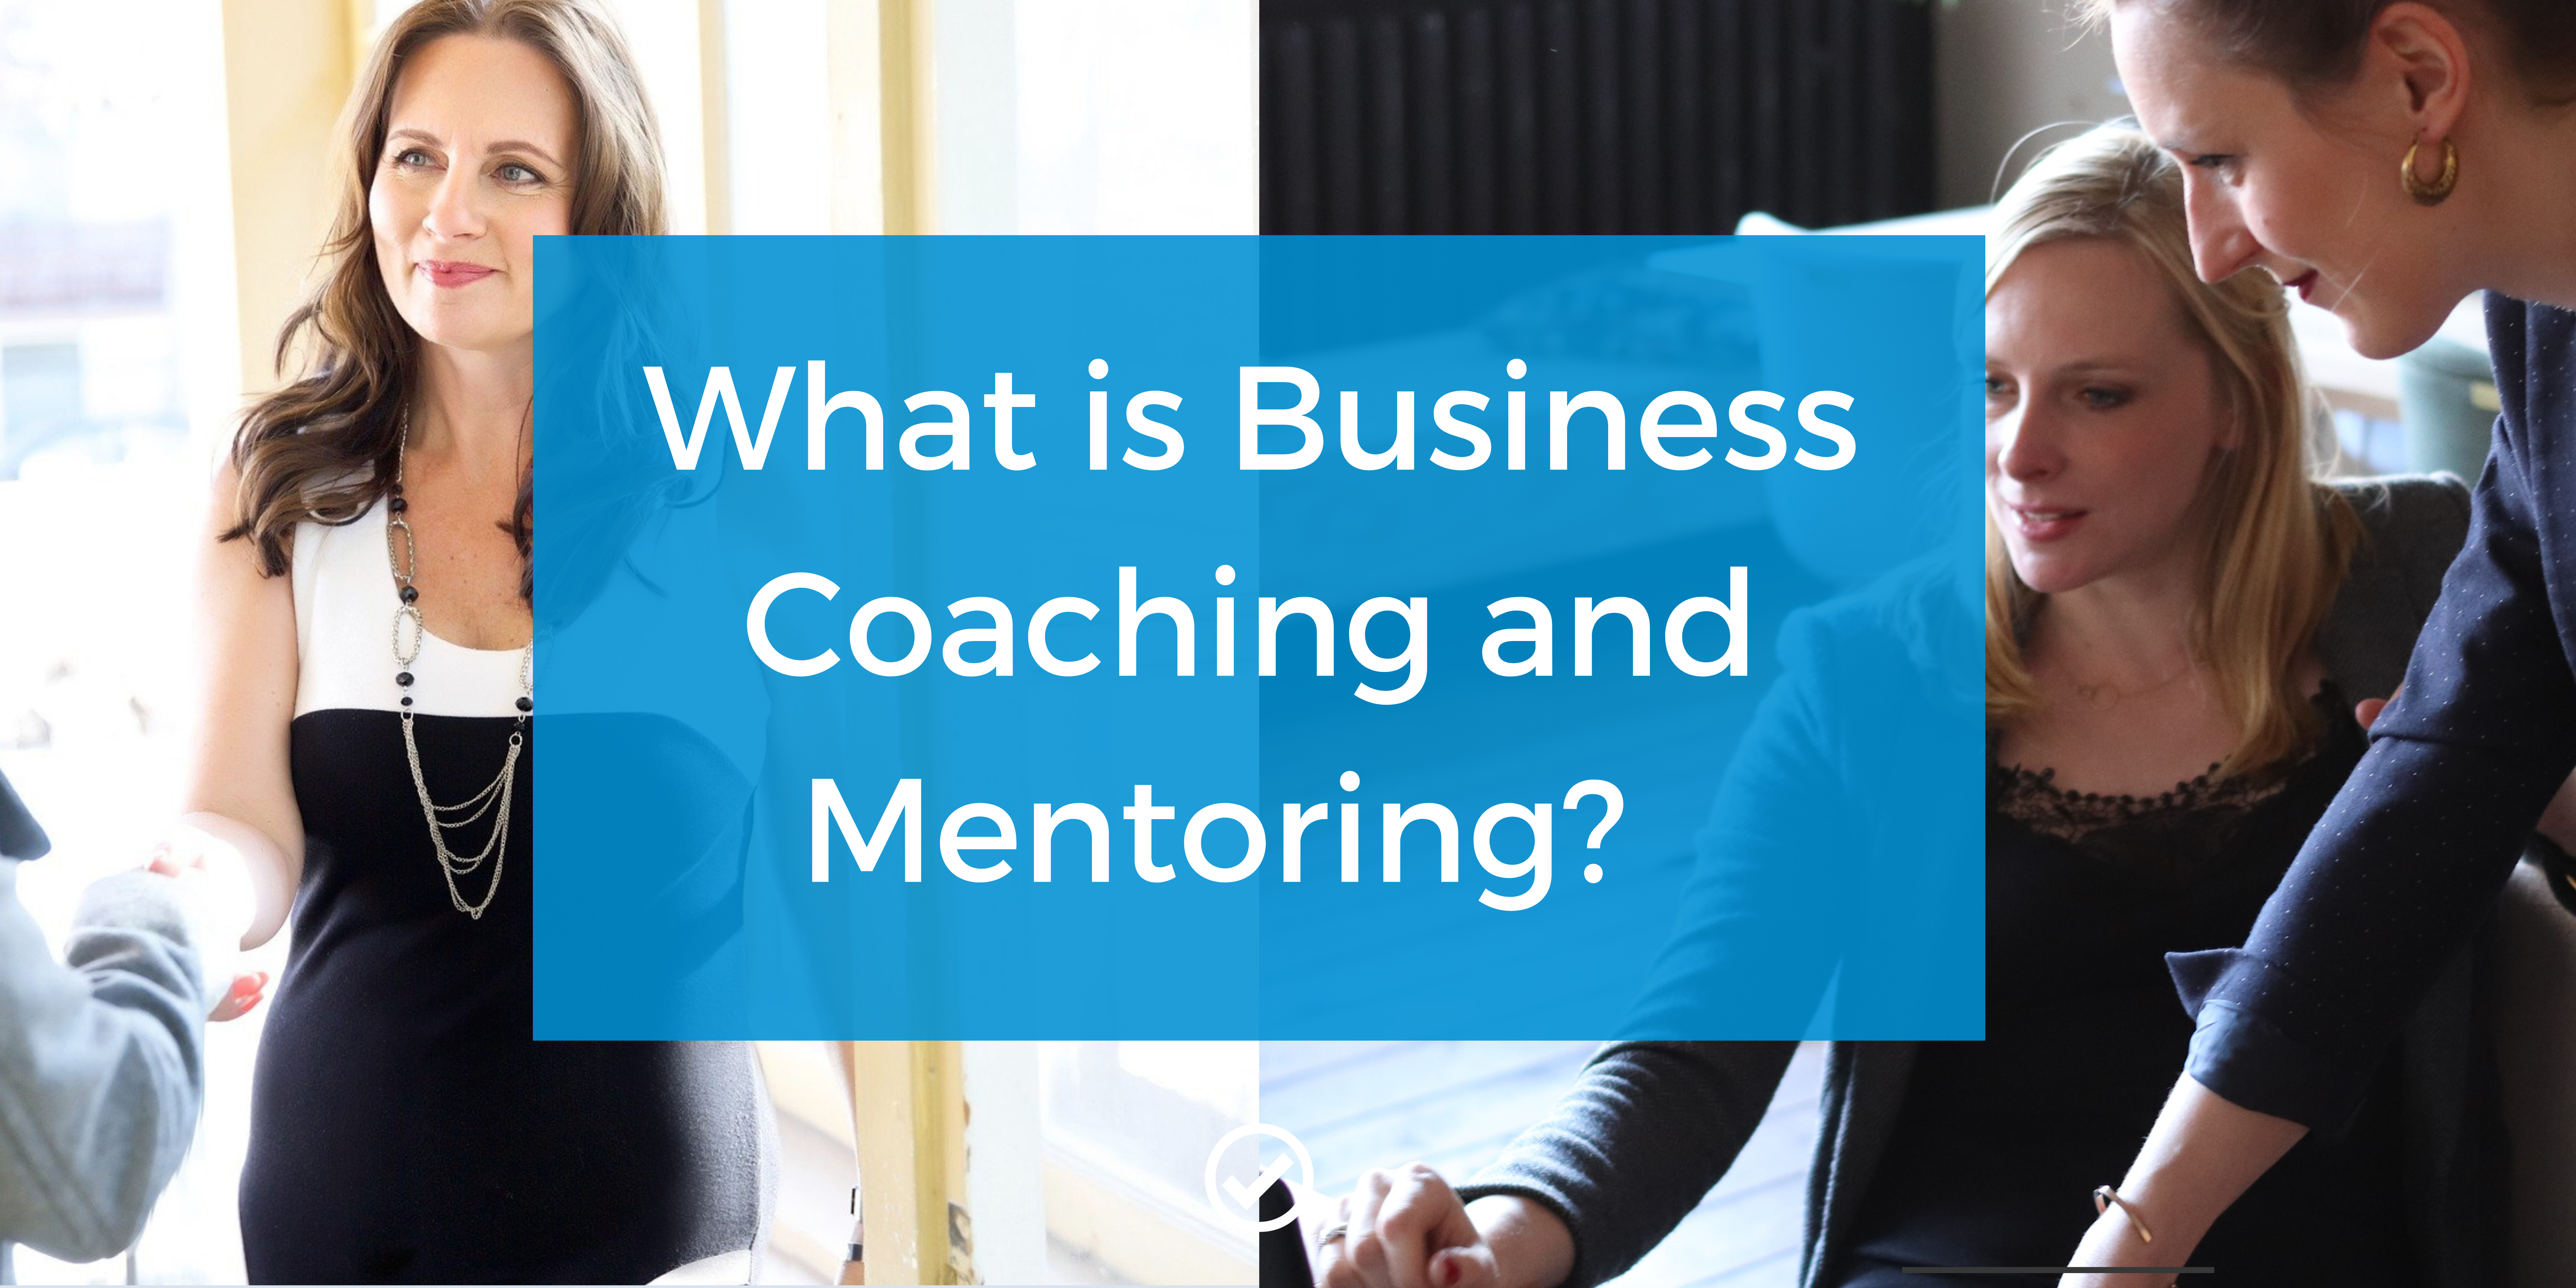 What is Business Coaching and Mentoring?